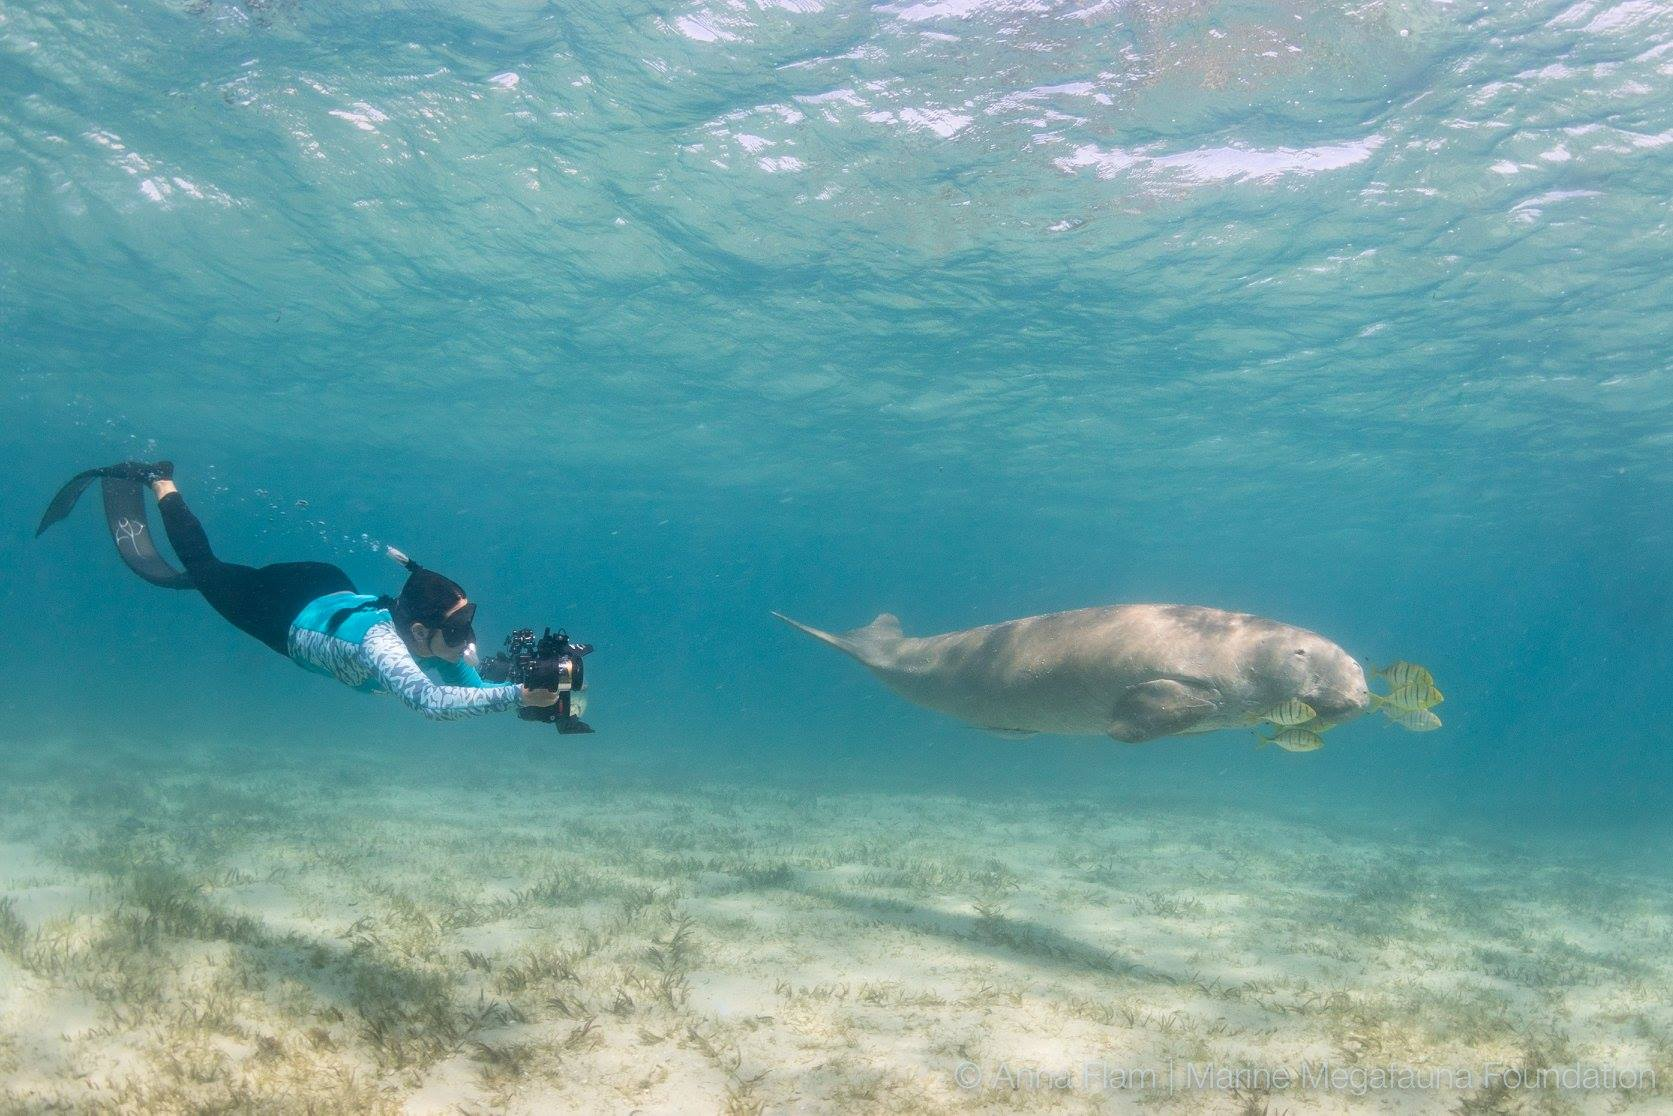 "DUBBED ""THE MANTA QUEEN' FOR HER GROUND BREAKING RESEARCH ON MANTA RAYS, THE MARINE MEGAFAUNA'S CO-FOUNDER, DR. ANDREA MARSHALL TAKES A MOMENT TO PHOTOGRAPH A DUGONG IN THE BARAZUTO ARCHIPELAGO, MOZAMBIQUE. IMAGE: THANKS NTO MARINE MEGAFAUNA FOUNDATION (FACEBOOK)"